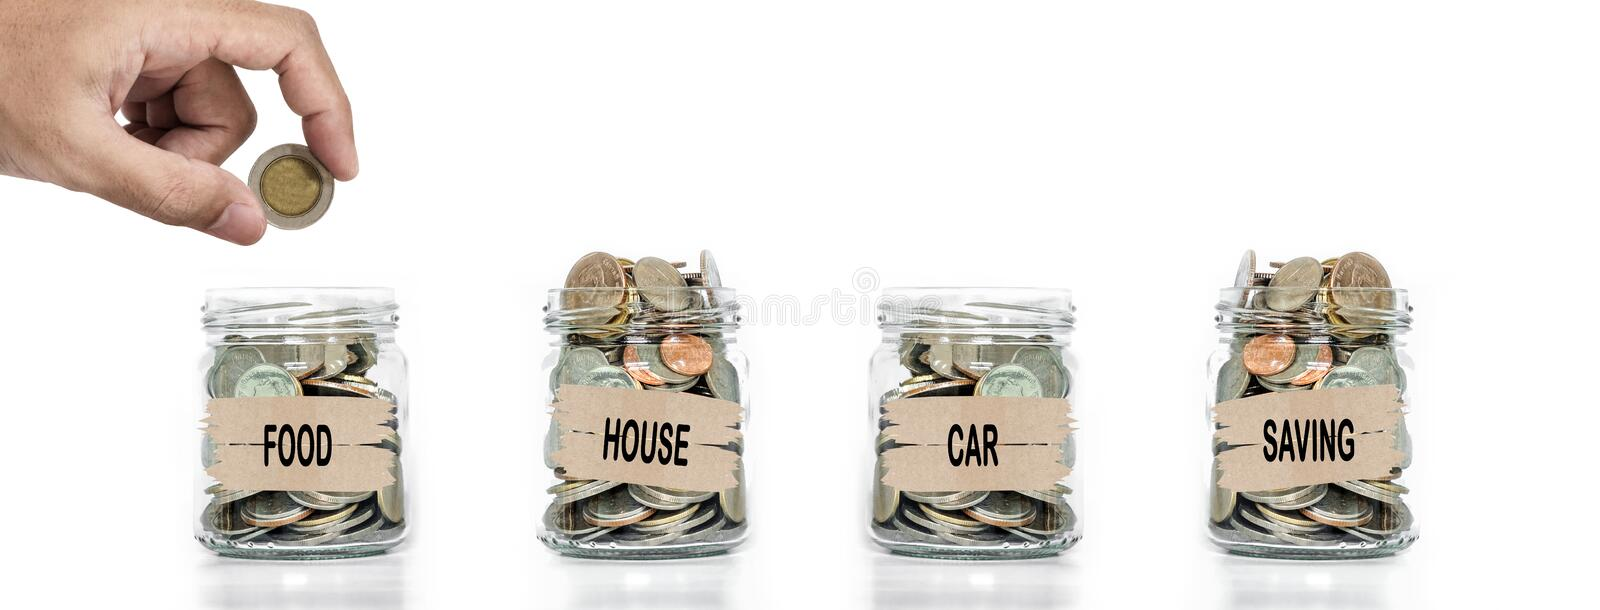 Hand putting coin in glass jar. Allocate money for foods, house, car and savings. Save money concept. S stock photo